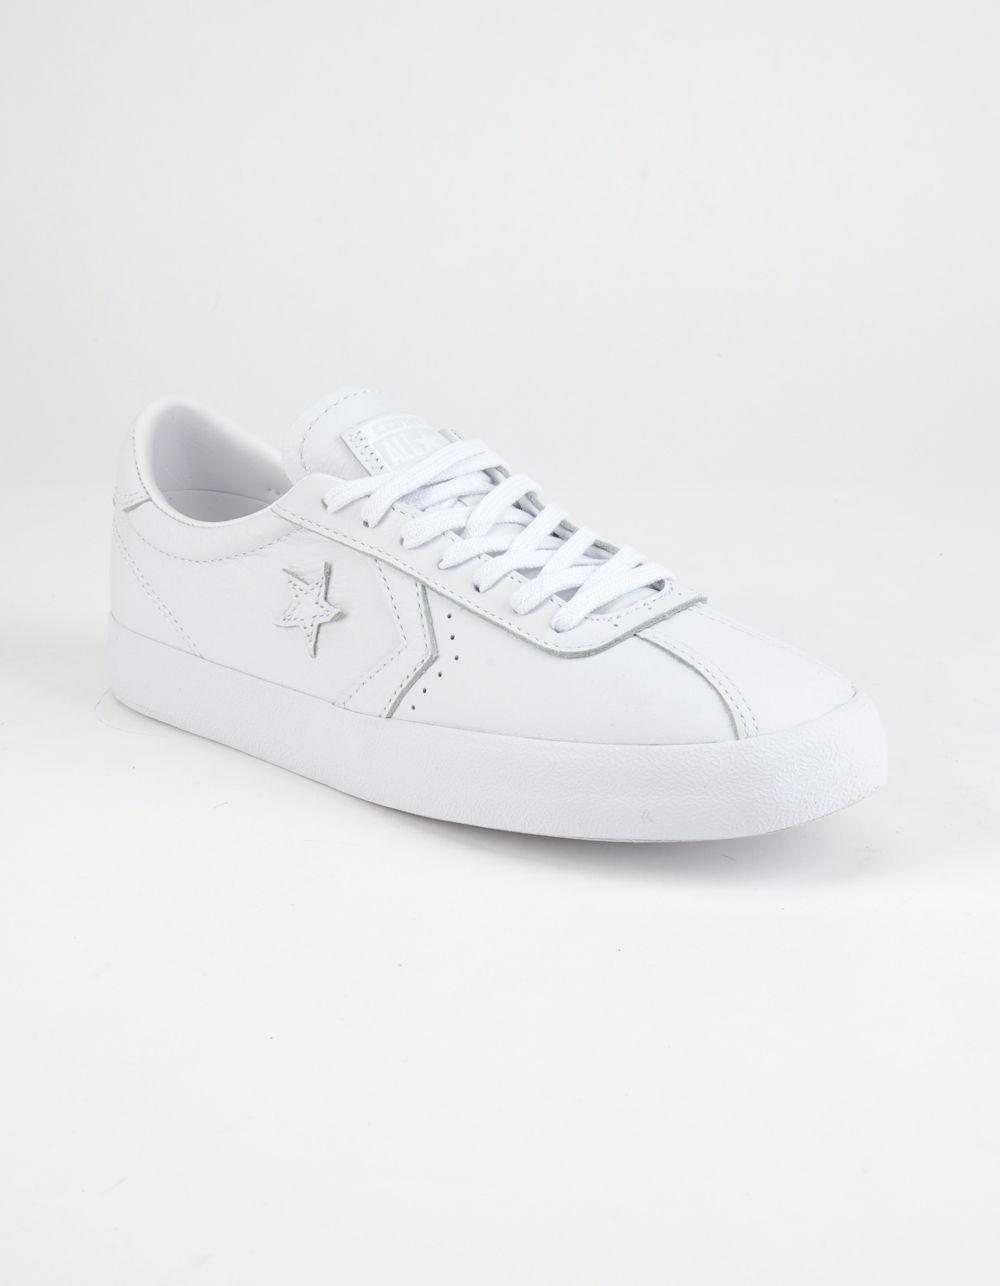 092219ad0a06 Lyst - Converse Breakpoint Leather Womens Low Top Shoes in White